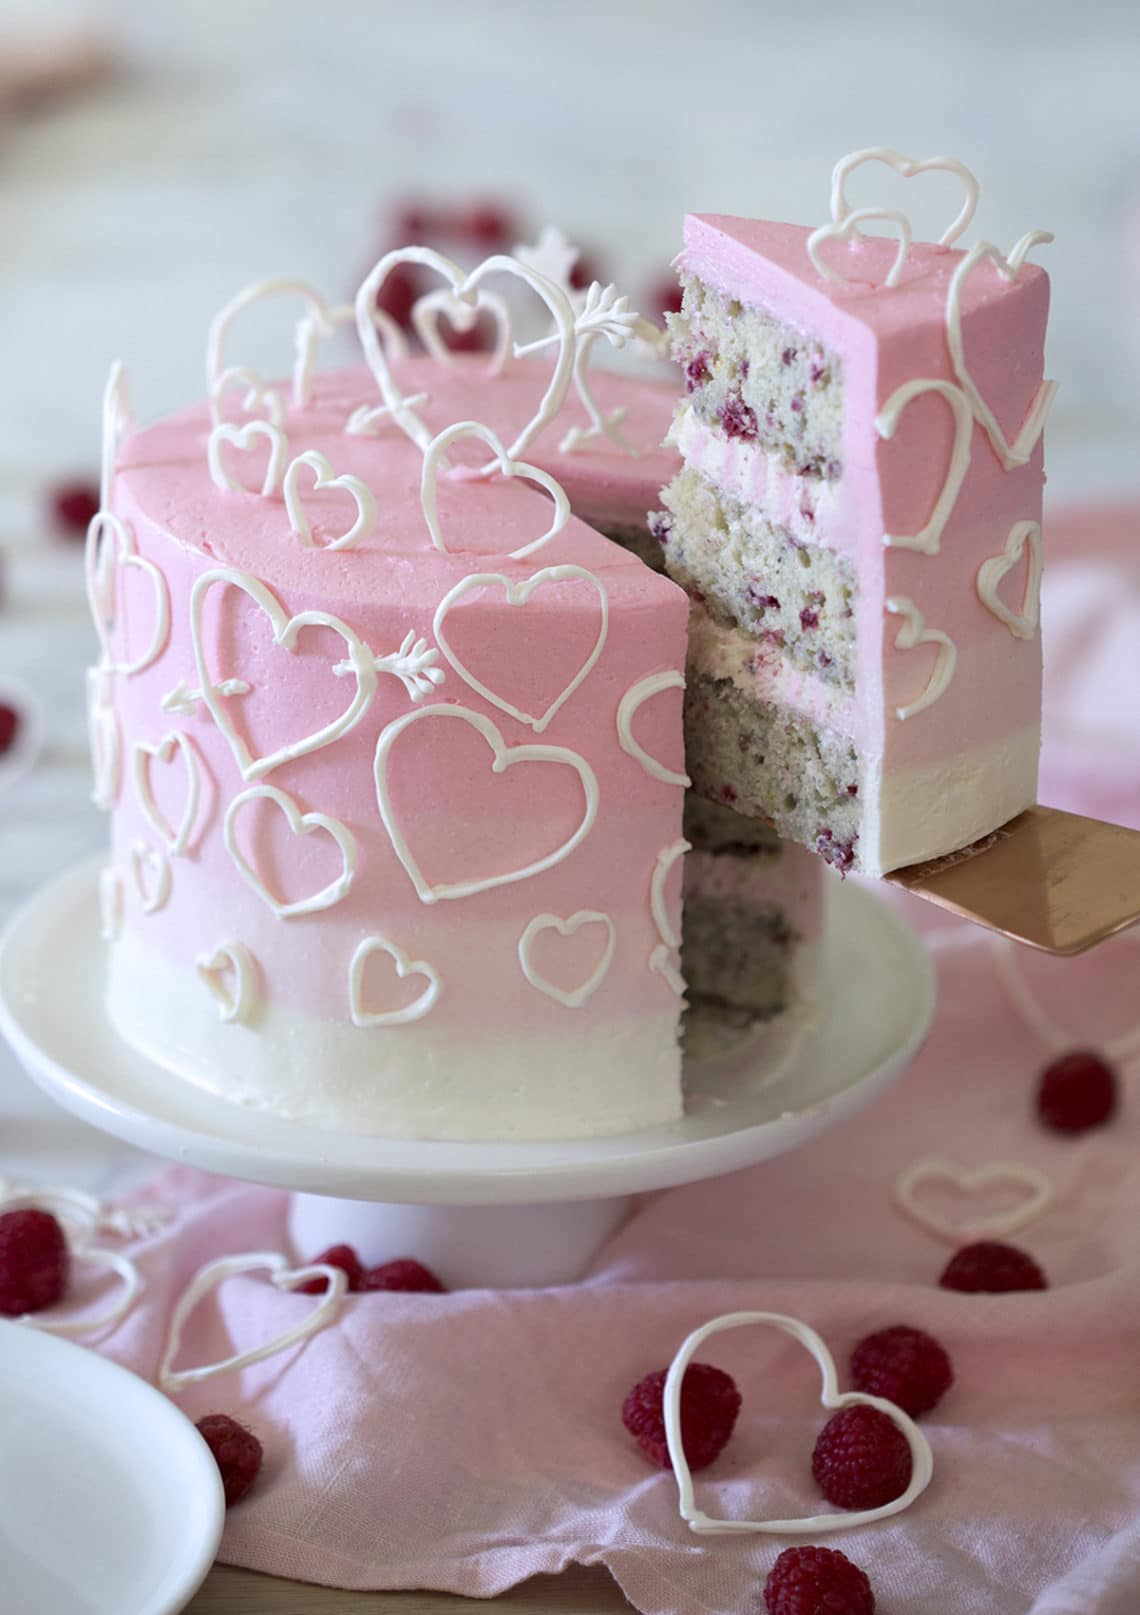 A photo of a Raspberry Valentine's Cake with a piece being removed